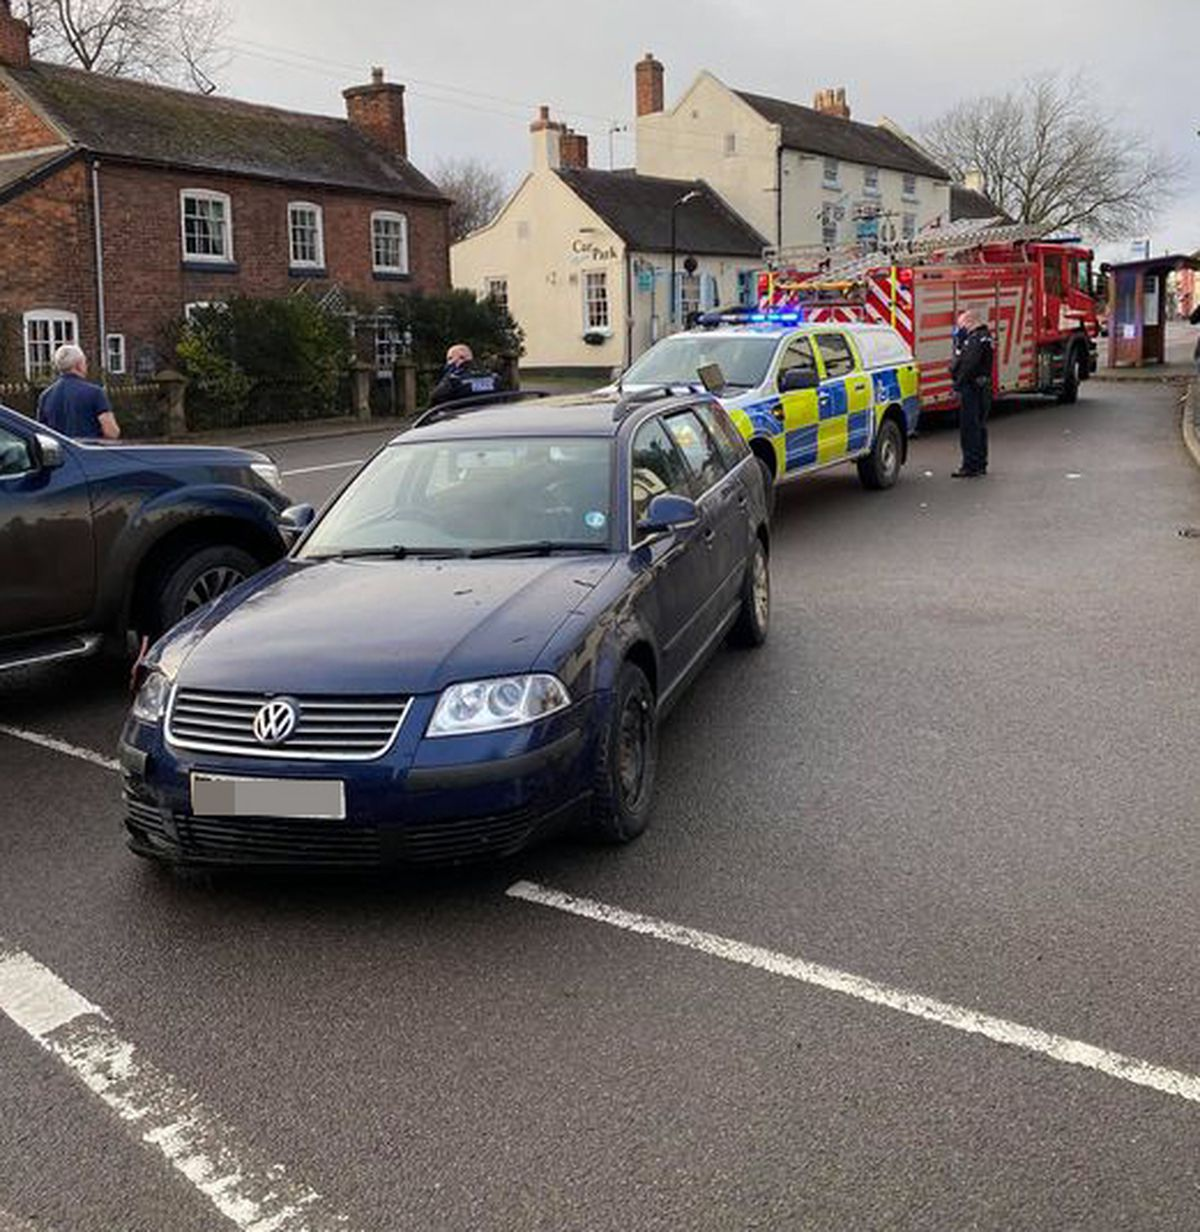 A blue Volkswagen was abandoned alongside the A49 in Dorrington following the crash